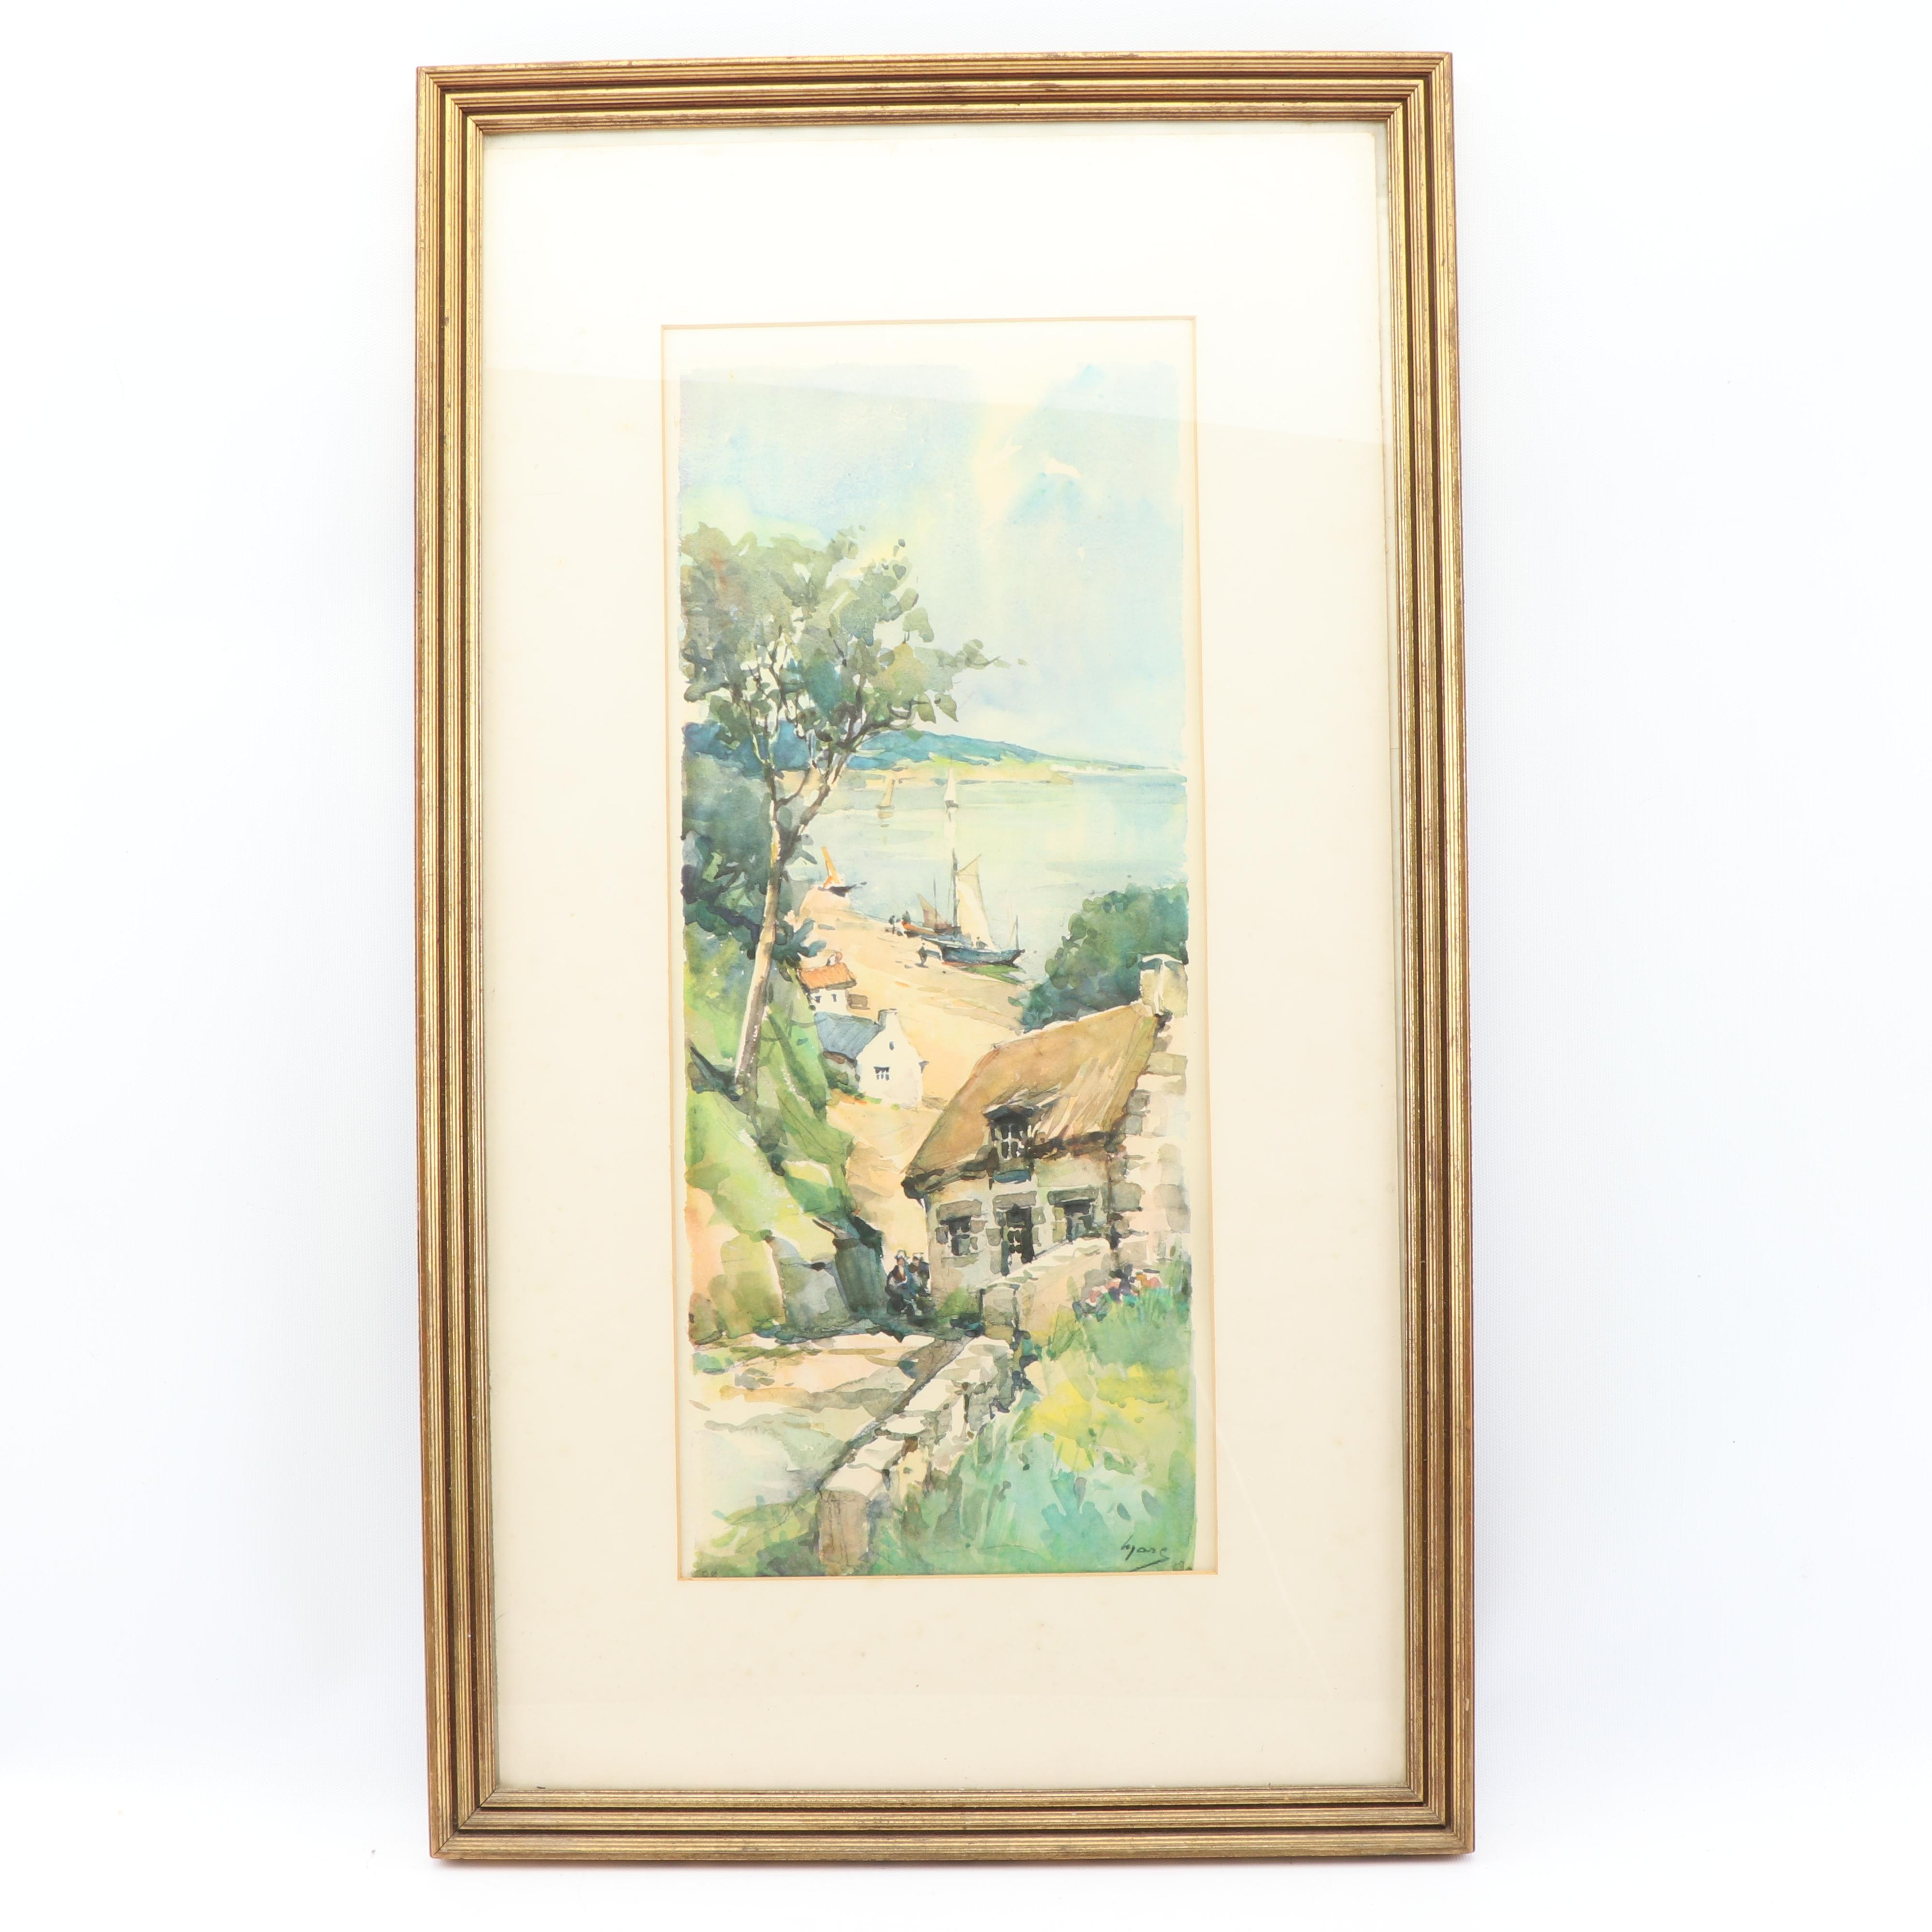 Offset Lithograph Landscape with Cabin